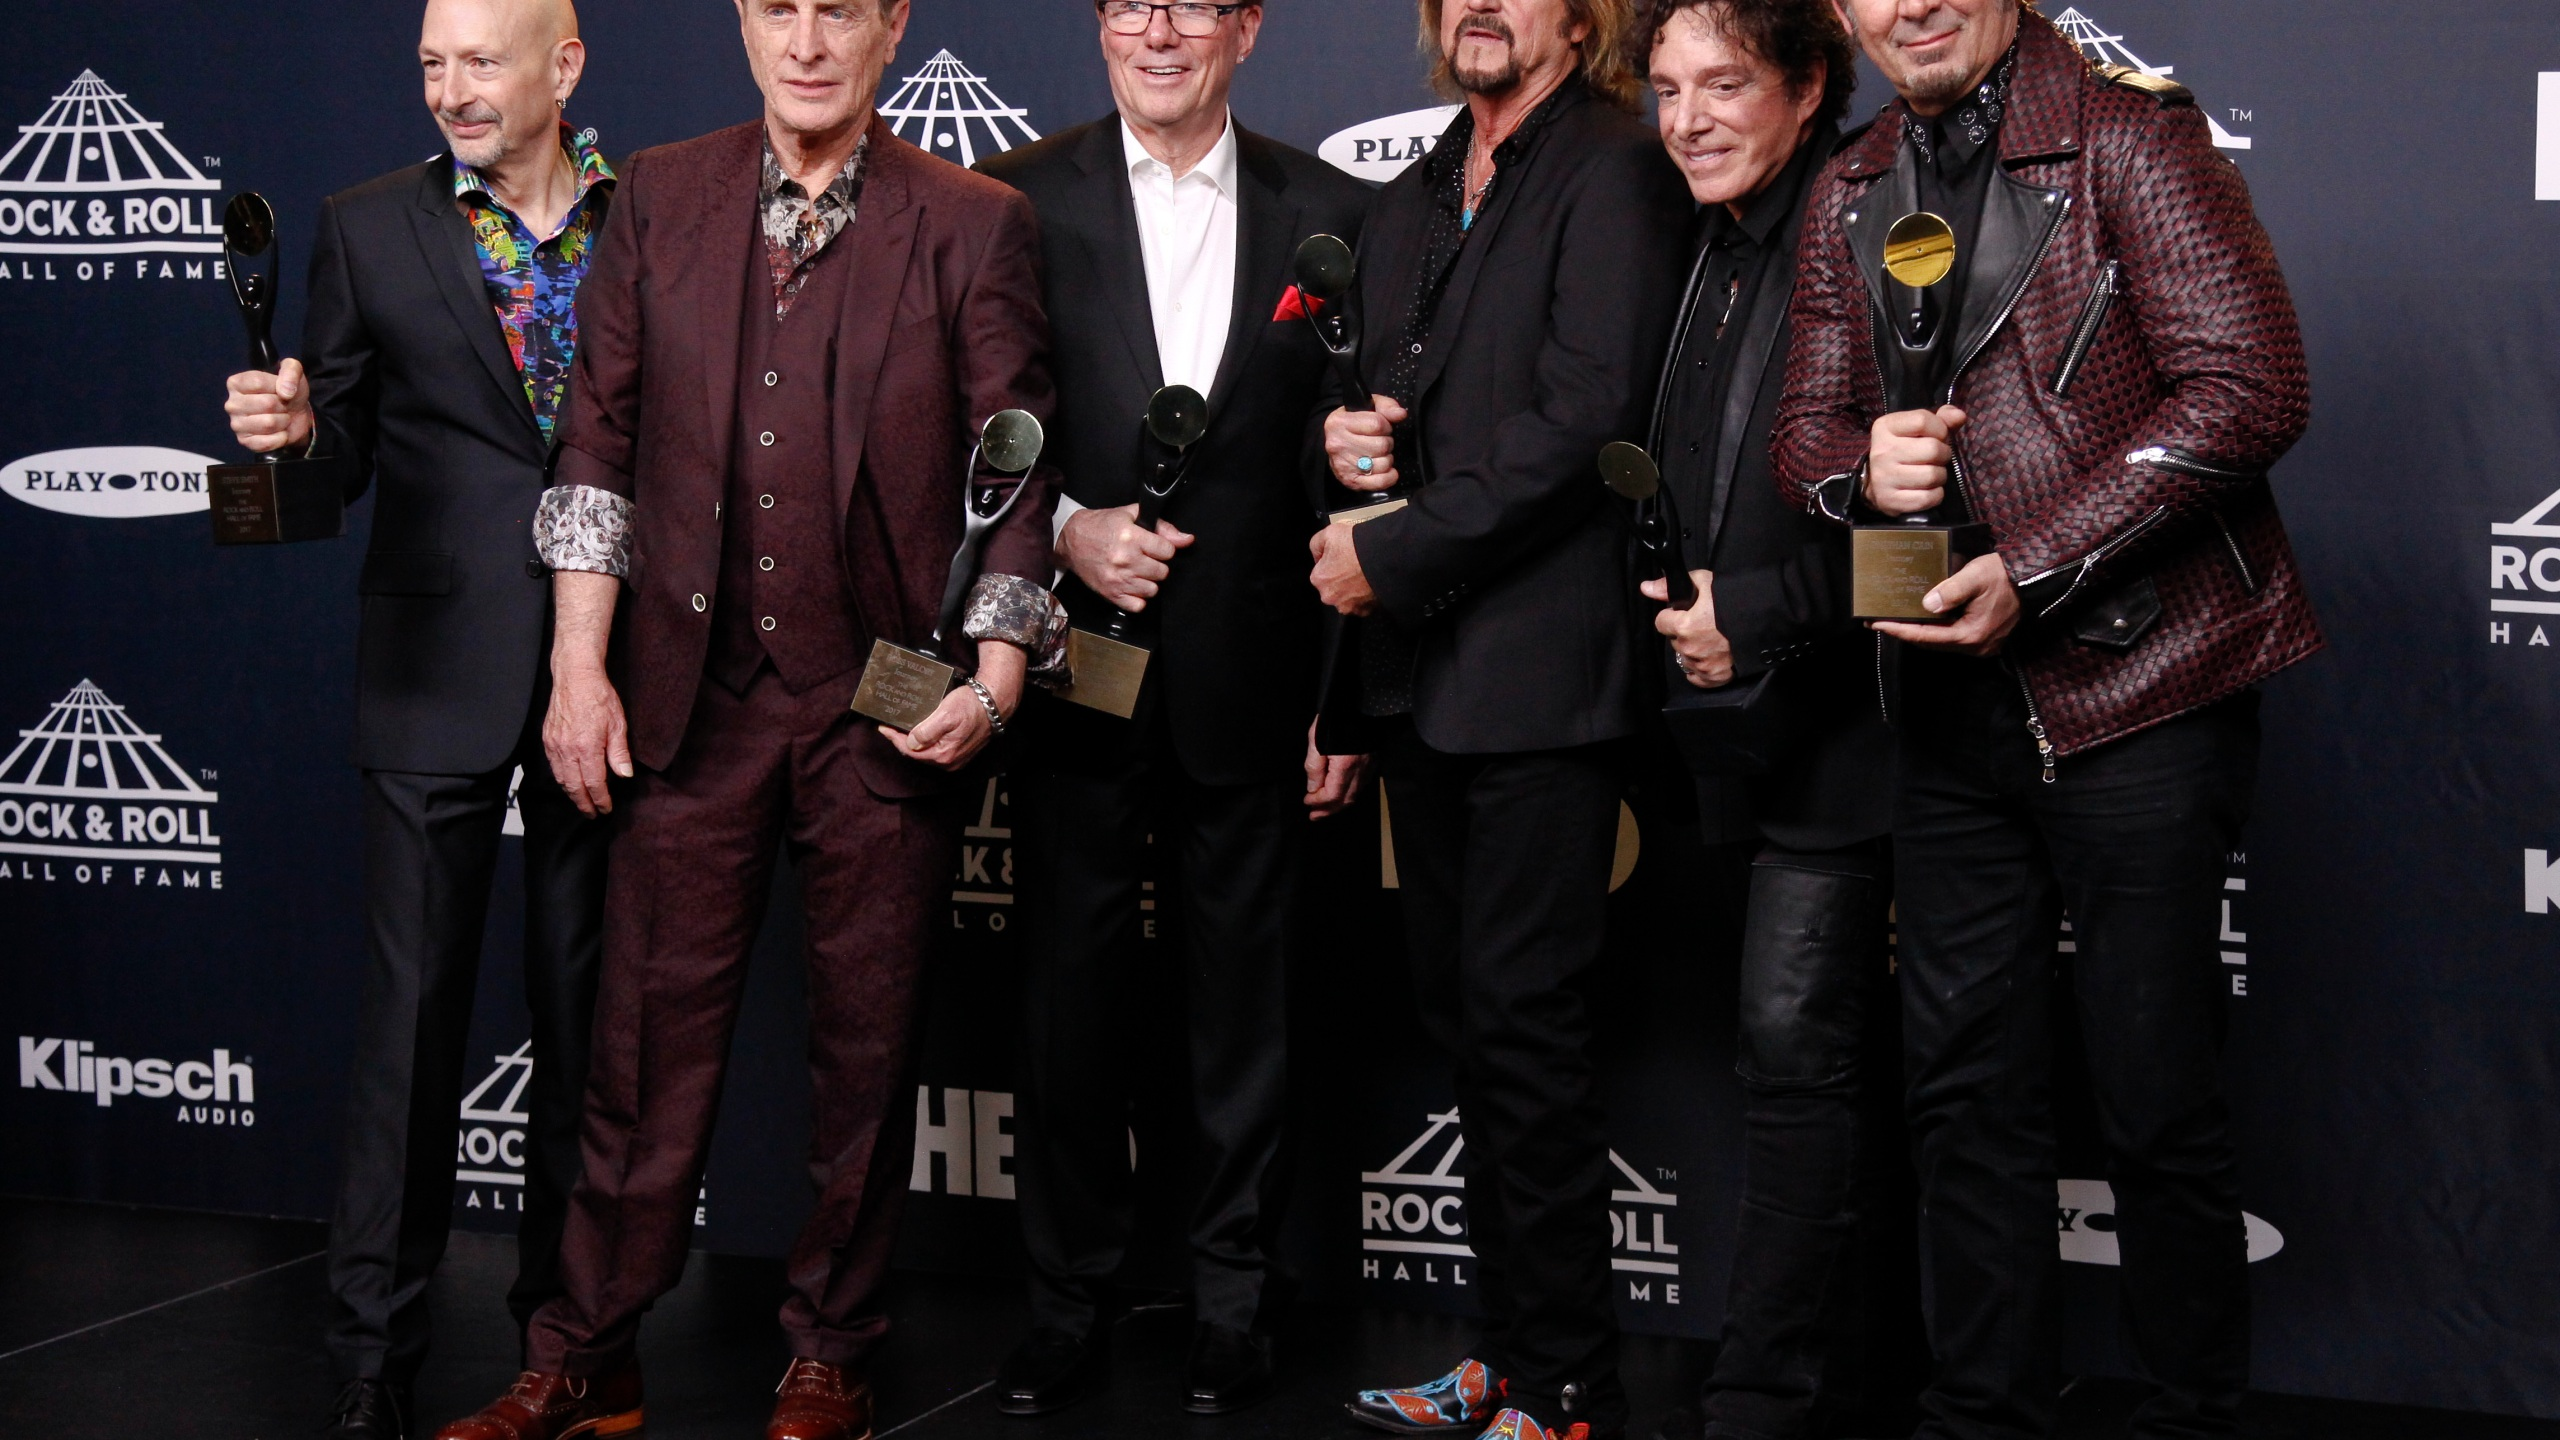 This April 7, 2017 file photo shows members of Journey, Steve Smith, from left, Ross Valory, Aynsley Dunbar, Gregg Rolie, Neal Schon and Jonathan Cain at the 2017 Rock and Roll Hall of Fame induction ceremony in New York. Journey is the latest act to cancel their 2020 tour because of the coronavirus pandemic. The rock band was supposed to kick off their new tour on May 15 but announced Monday that they would no longer hit the road. Band members said they decided to cancel the tour, instead of postponing it, so that concertgoers would qualify for immediate refunds. (Photo by Andy Kropa/Invision/AP, File)